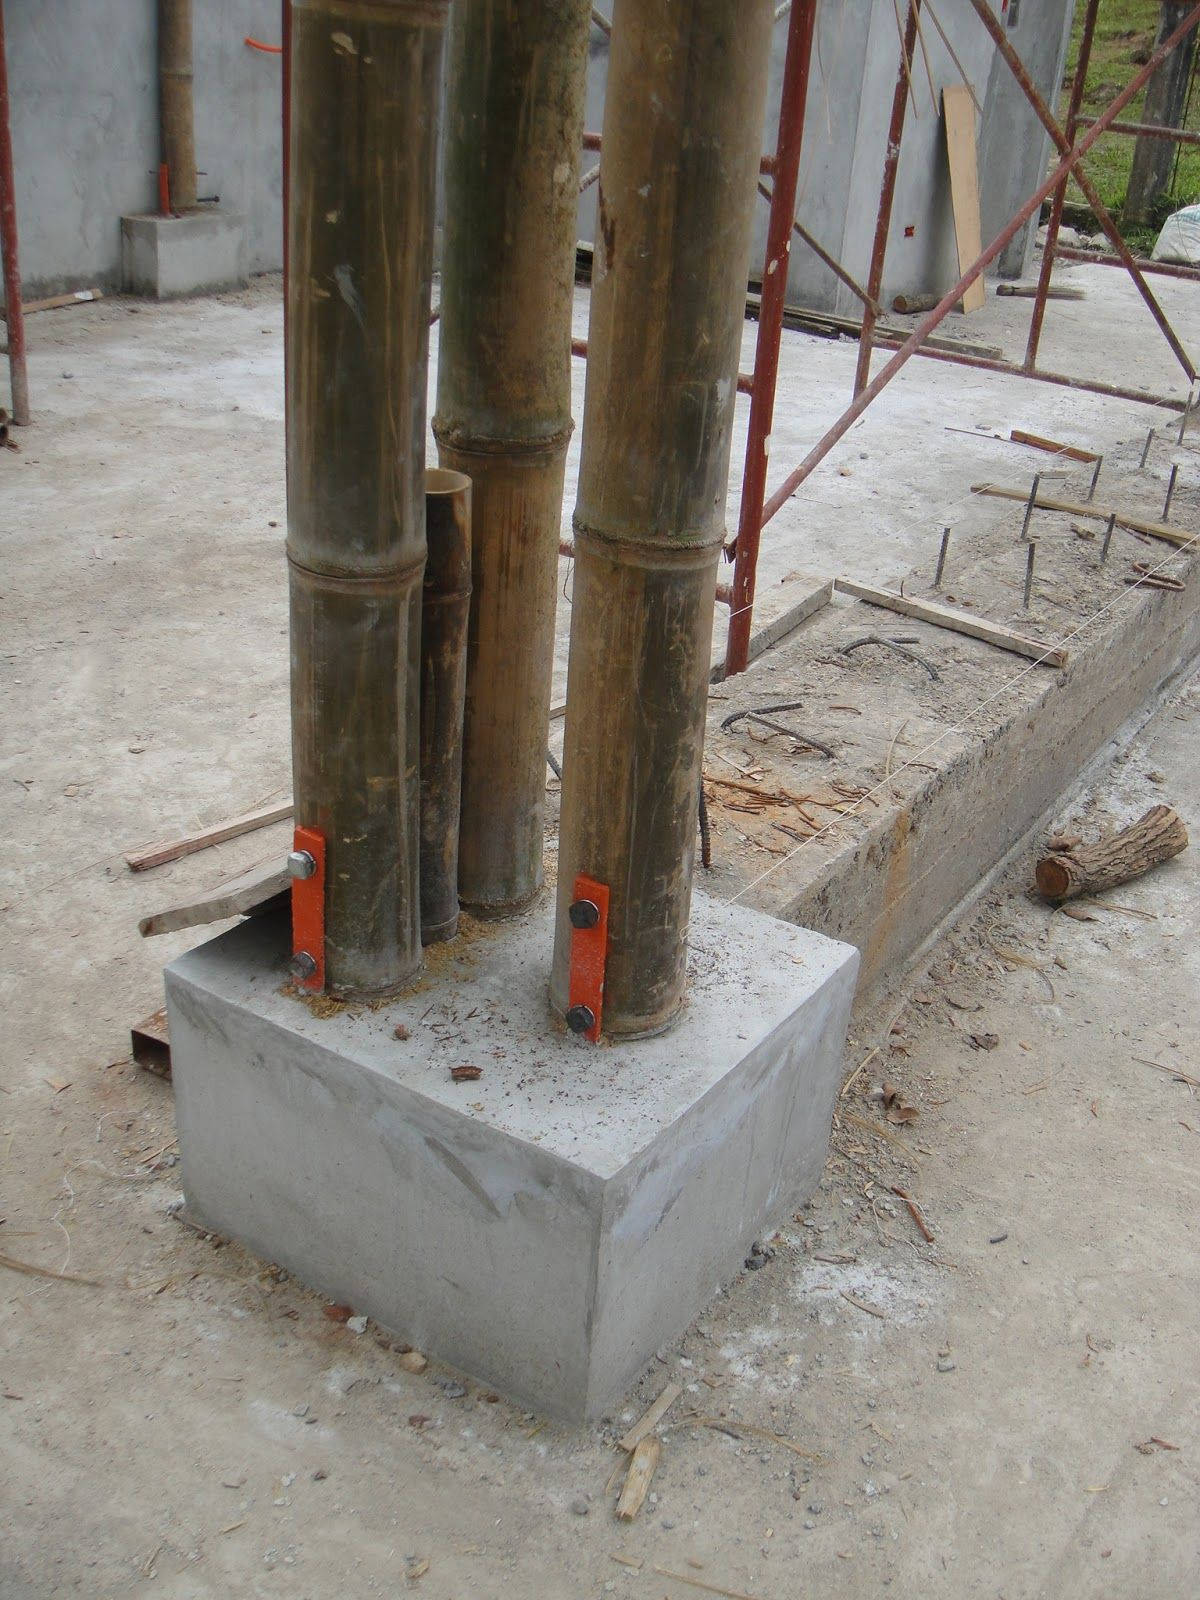 Bamboo structure the bamboo structure is suited - Concrete Beams Can Use Bamboo Reinforced Simple Efficient And Cost Effective For Construction Bamboo Reinforced Concrete Beams With Shear Links Made Of